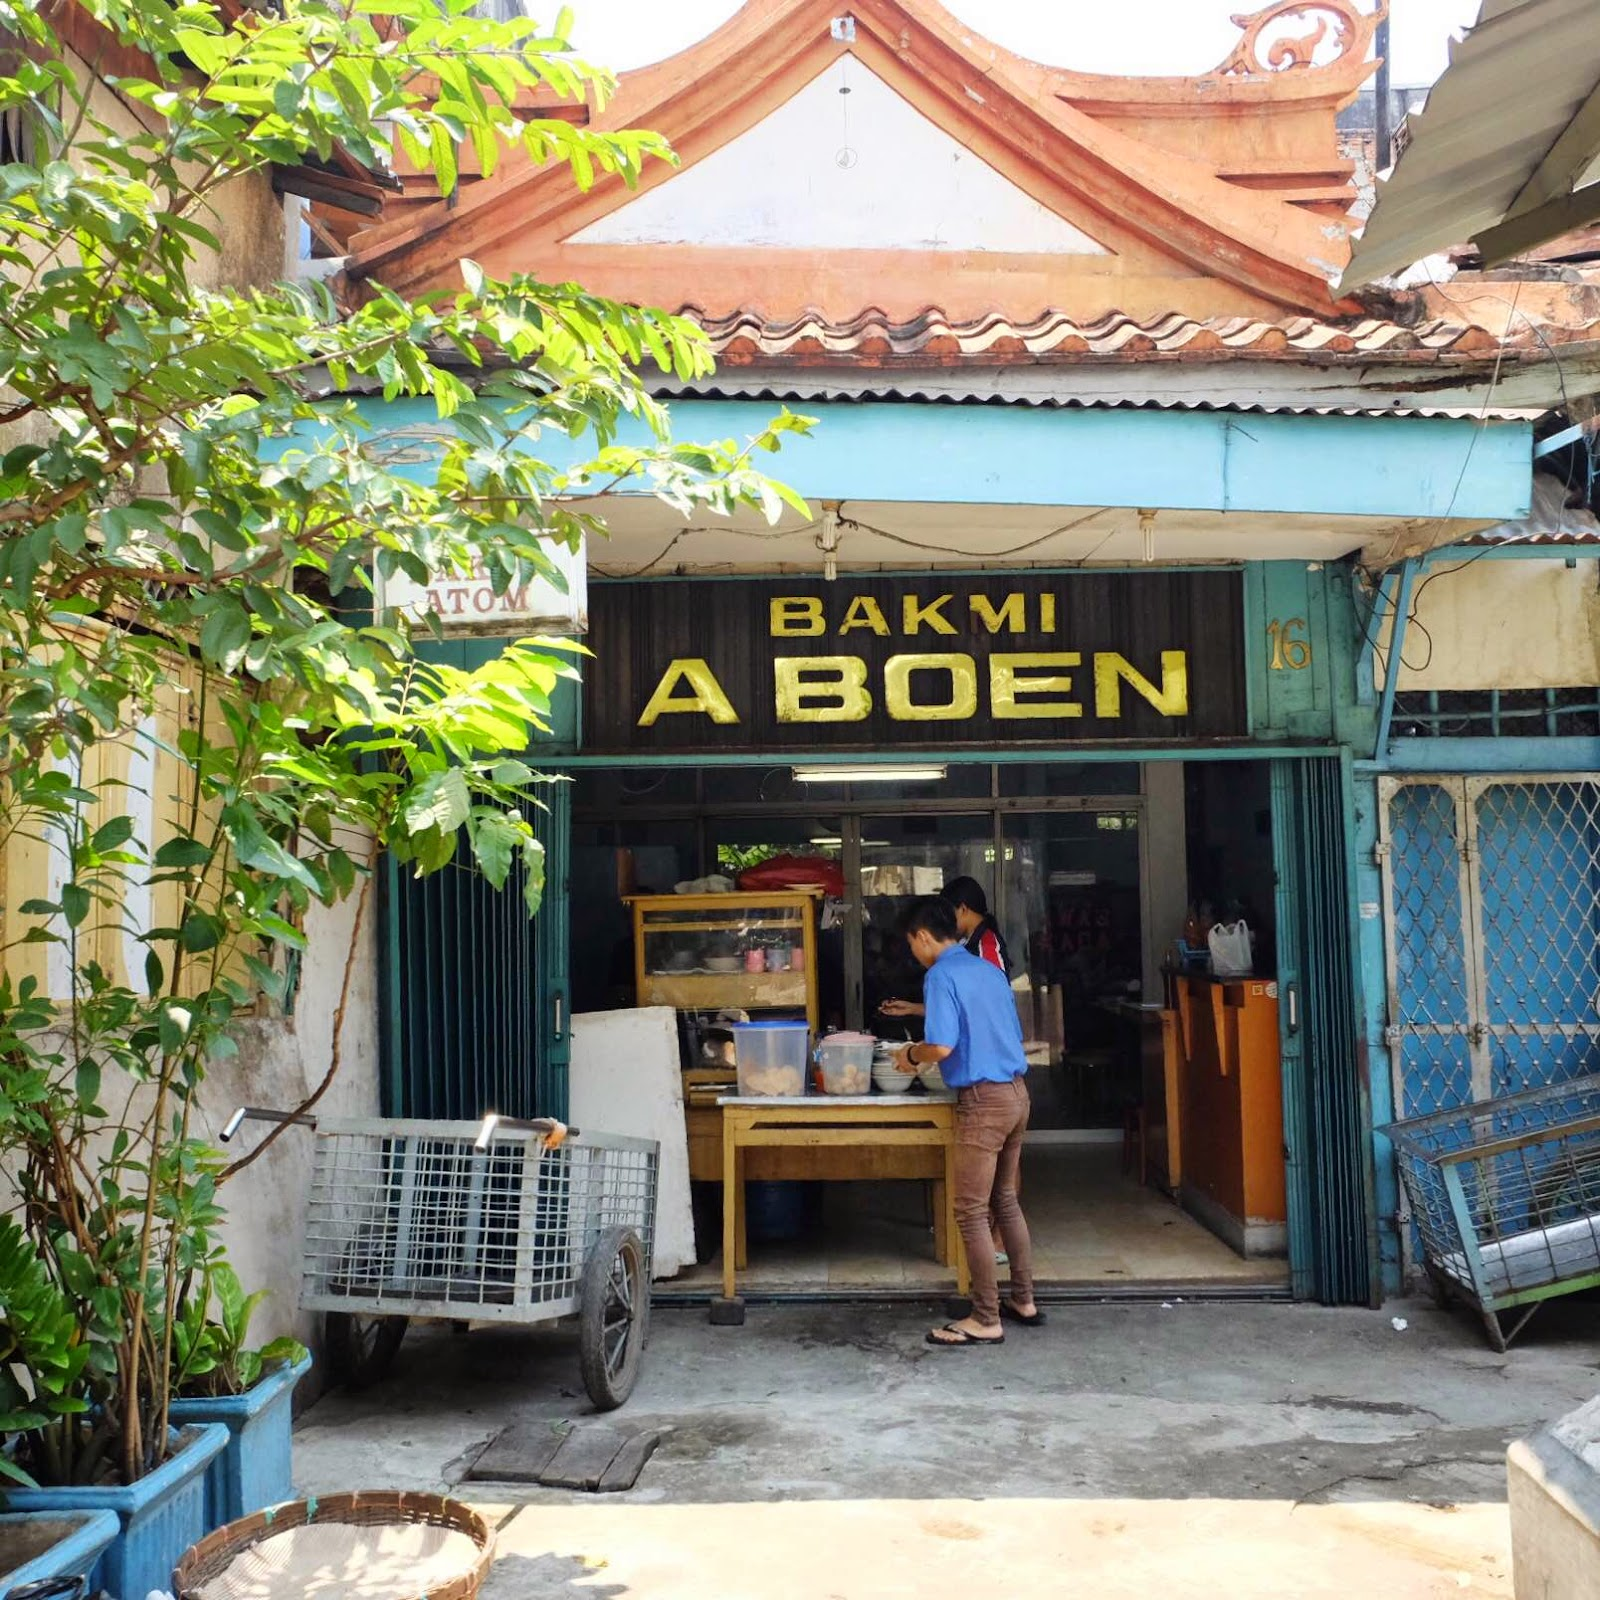 Bakmi A Boen is located in the end of an alleyway